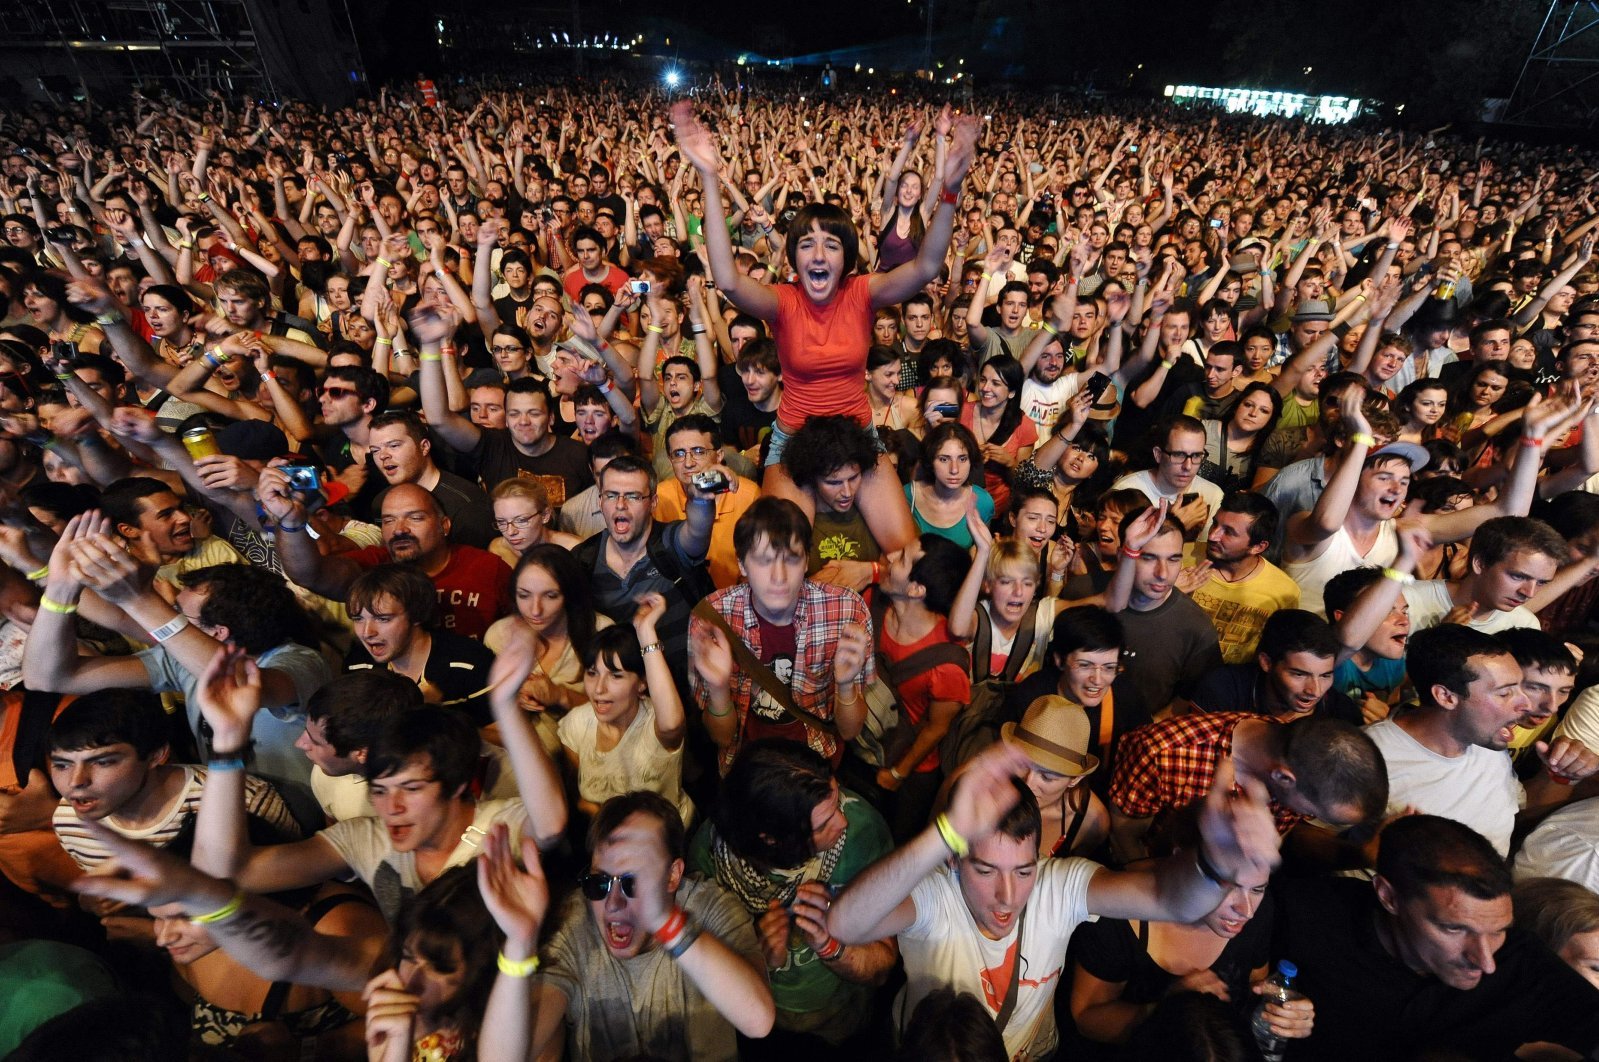 Festival-goers cheer during a concert at the EXIT music festival near Novi Sad, Serbia, July 7, 2011. (AFP File Photo)